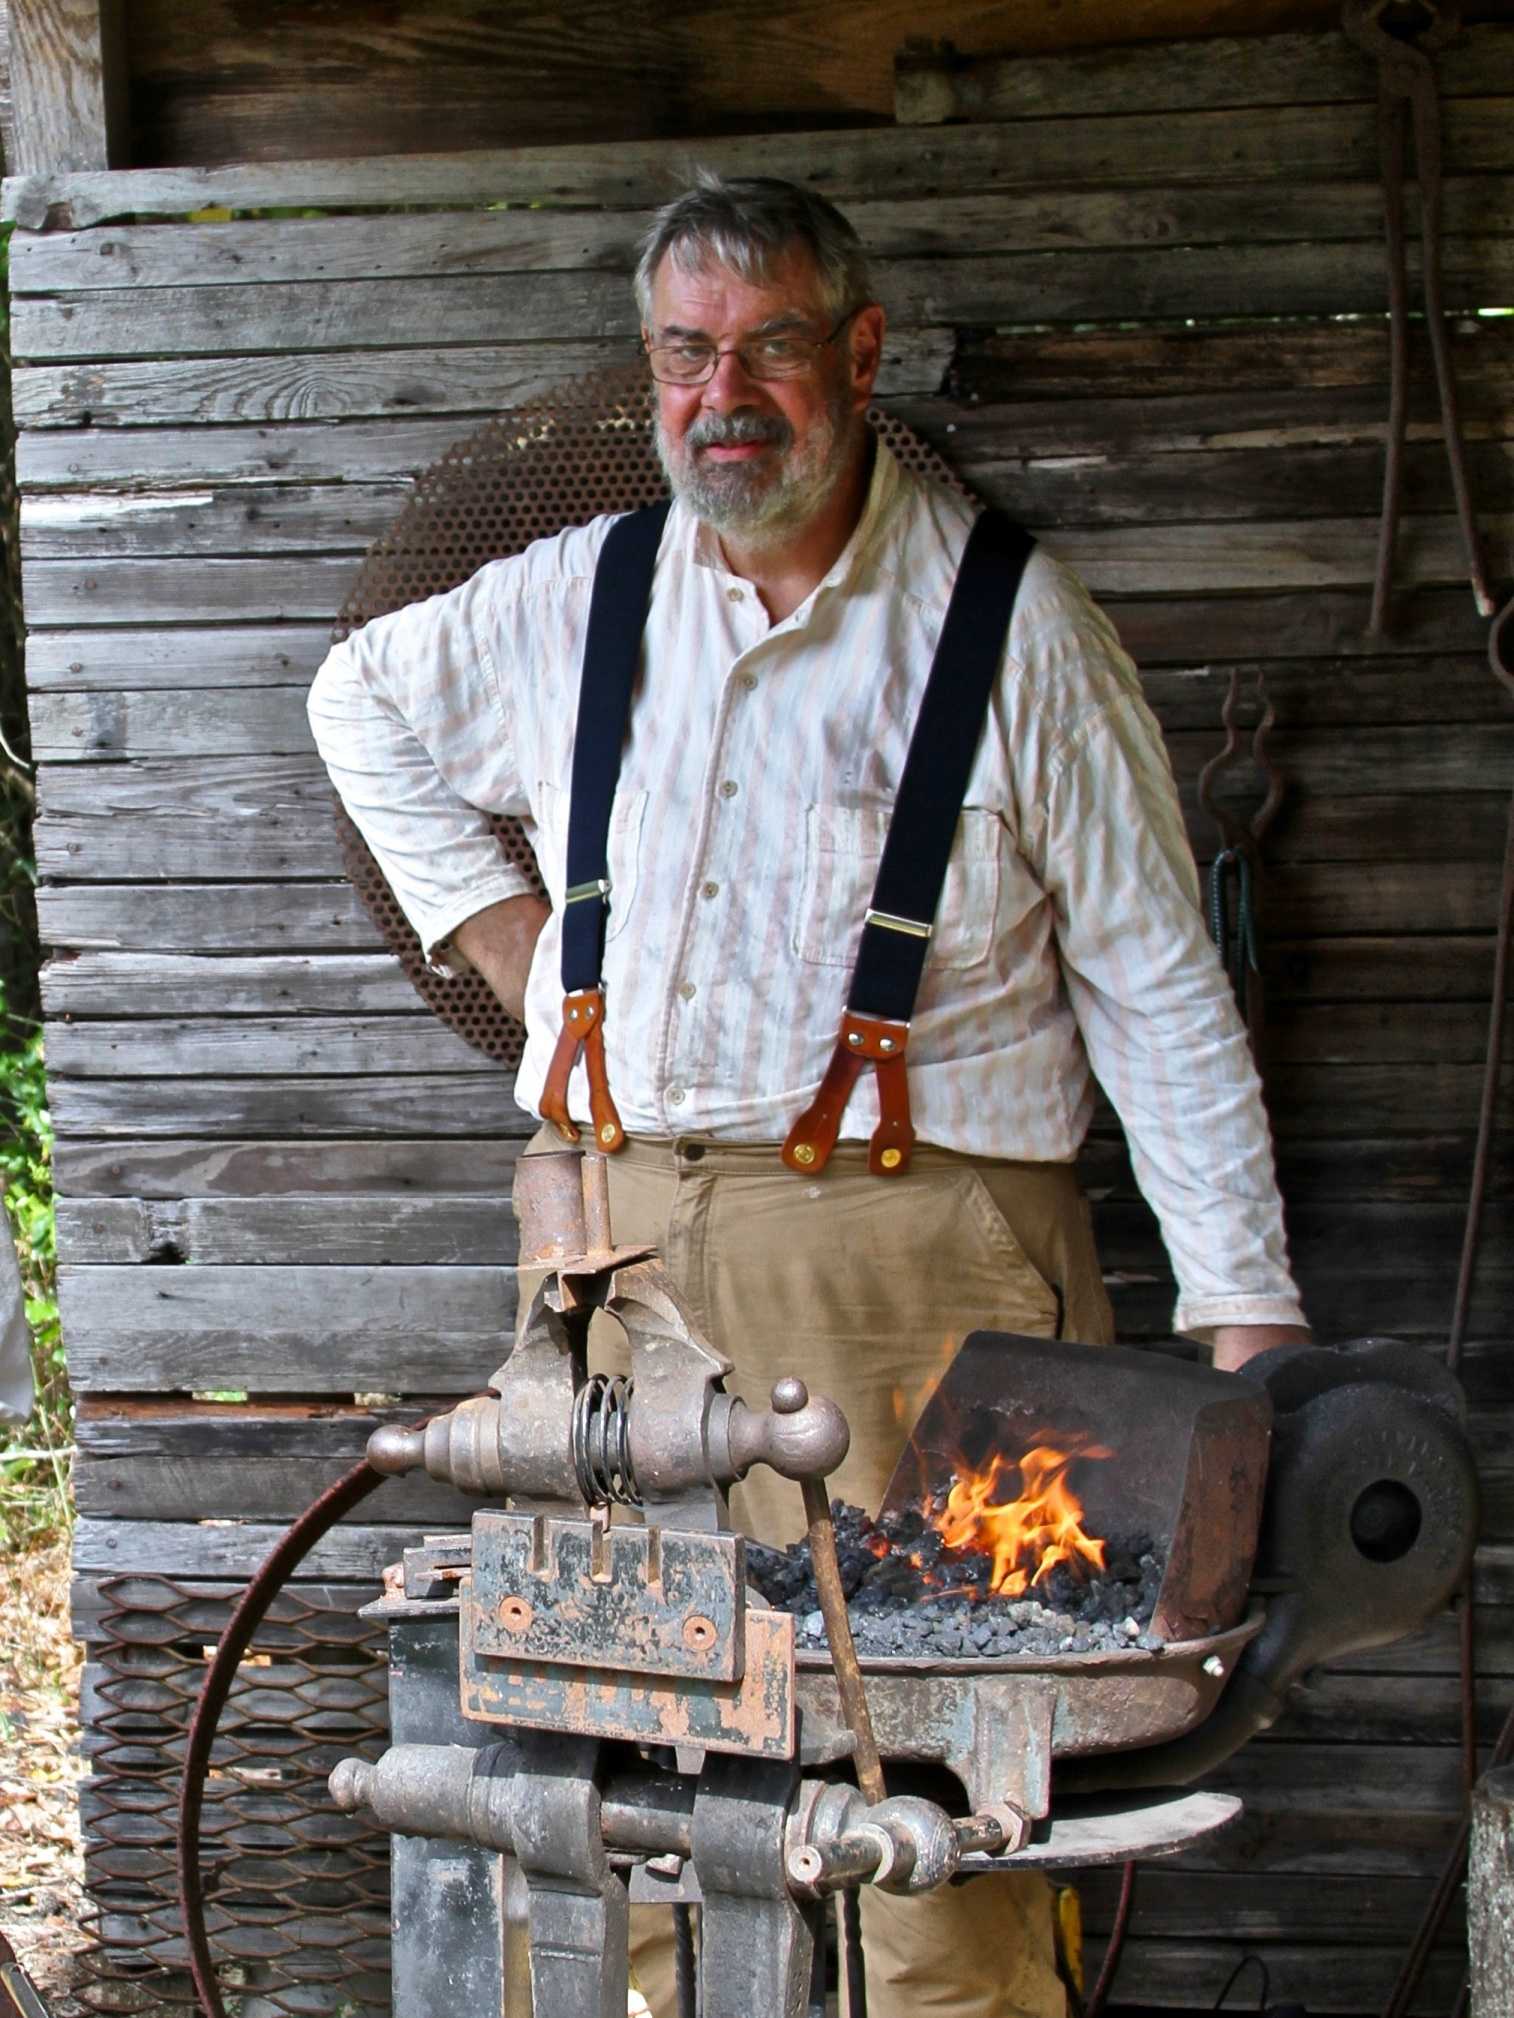 blacksmithing 2 9 12 Pat Furman